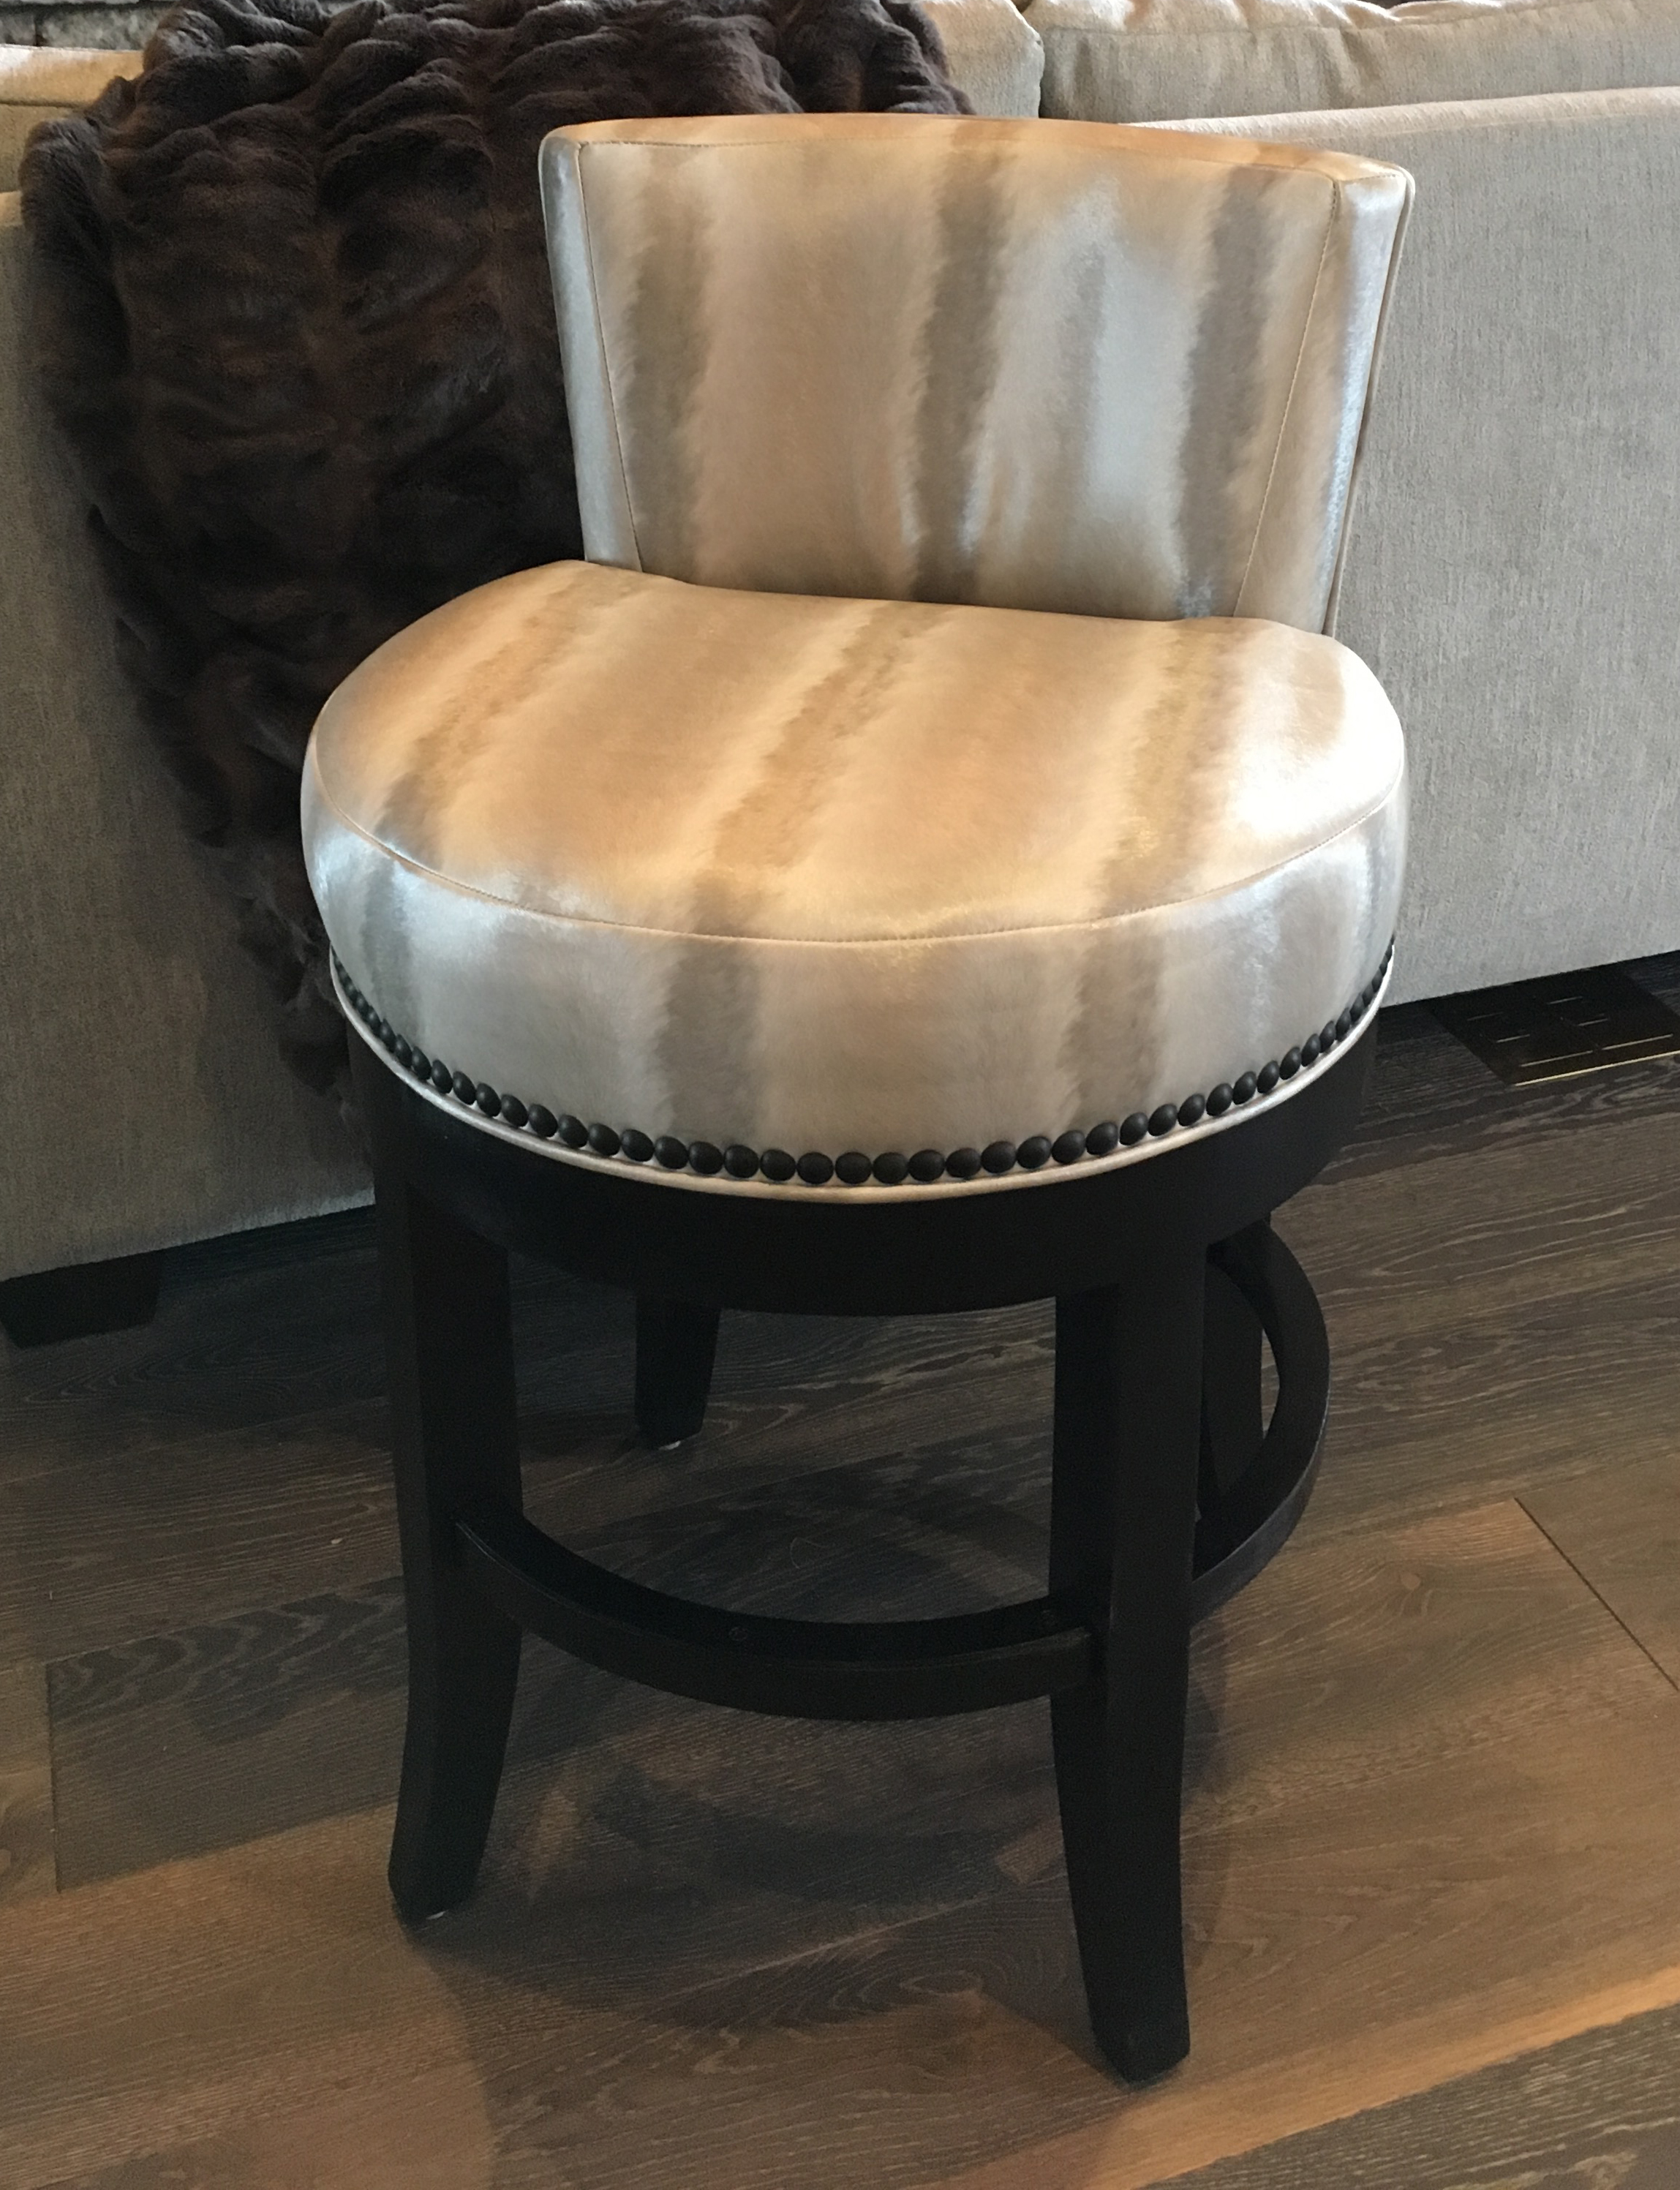 Custom Bar Stool   by Mike Regan |   Poulain Upholstery   by Christopher Hyland